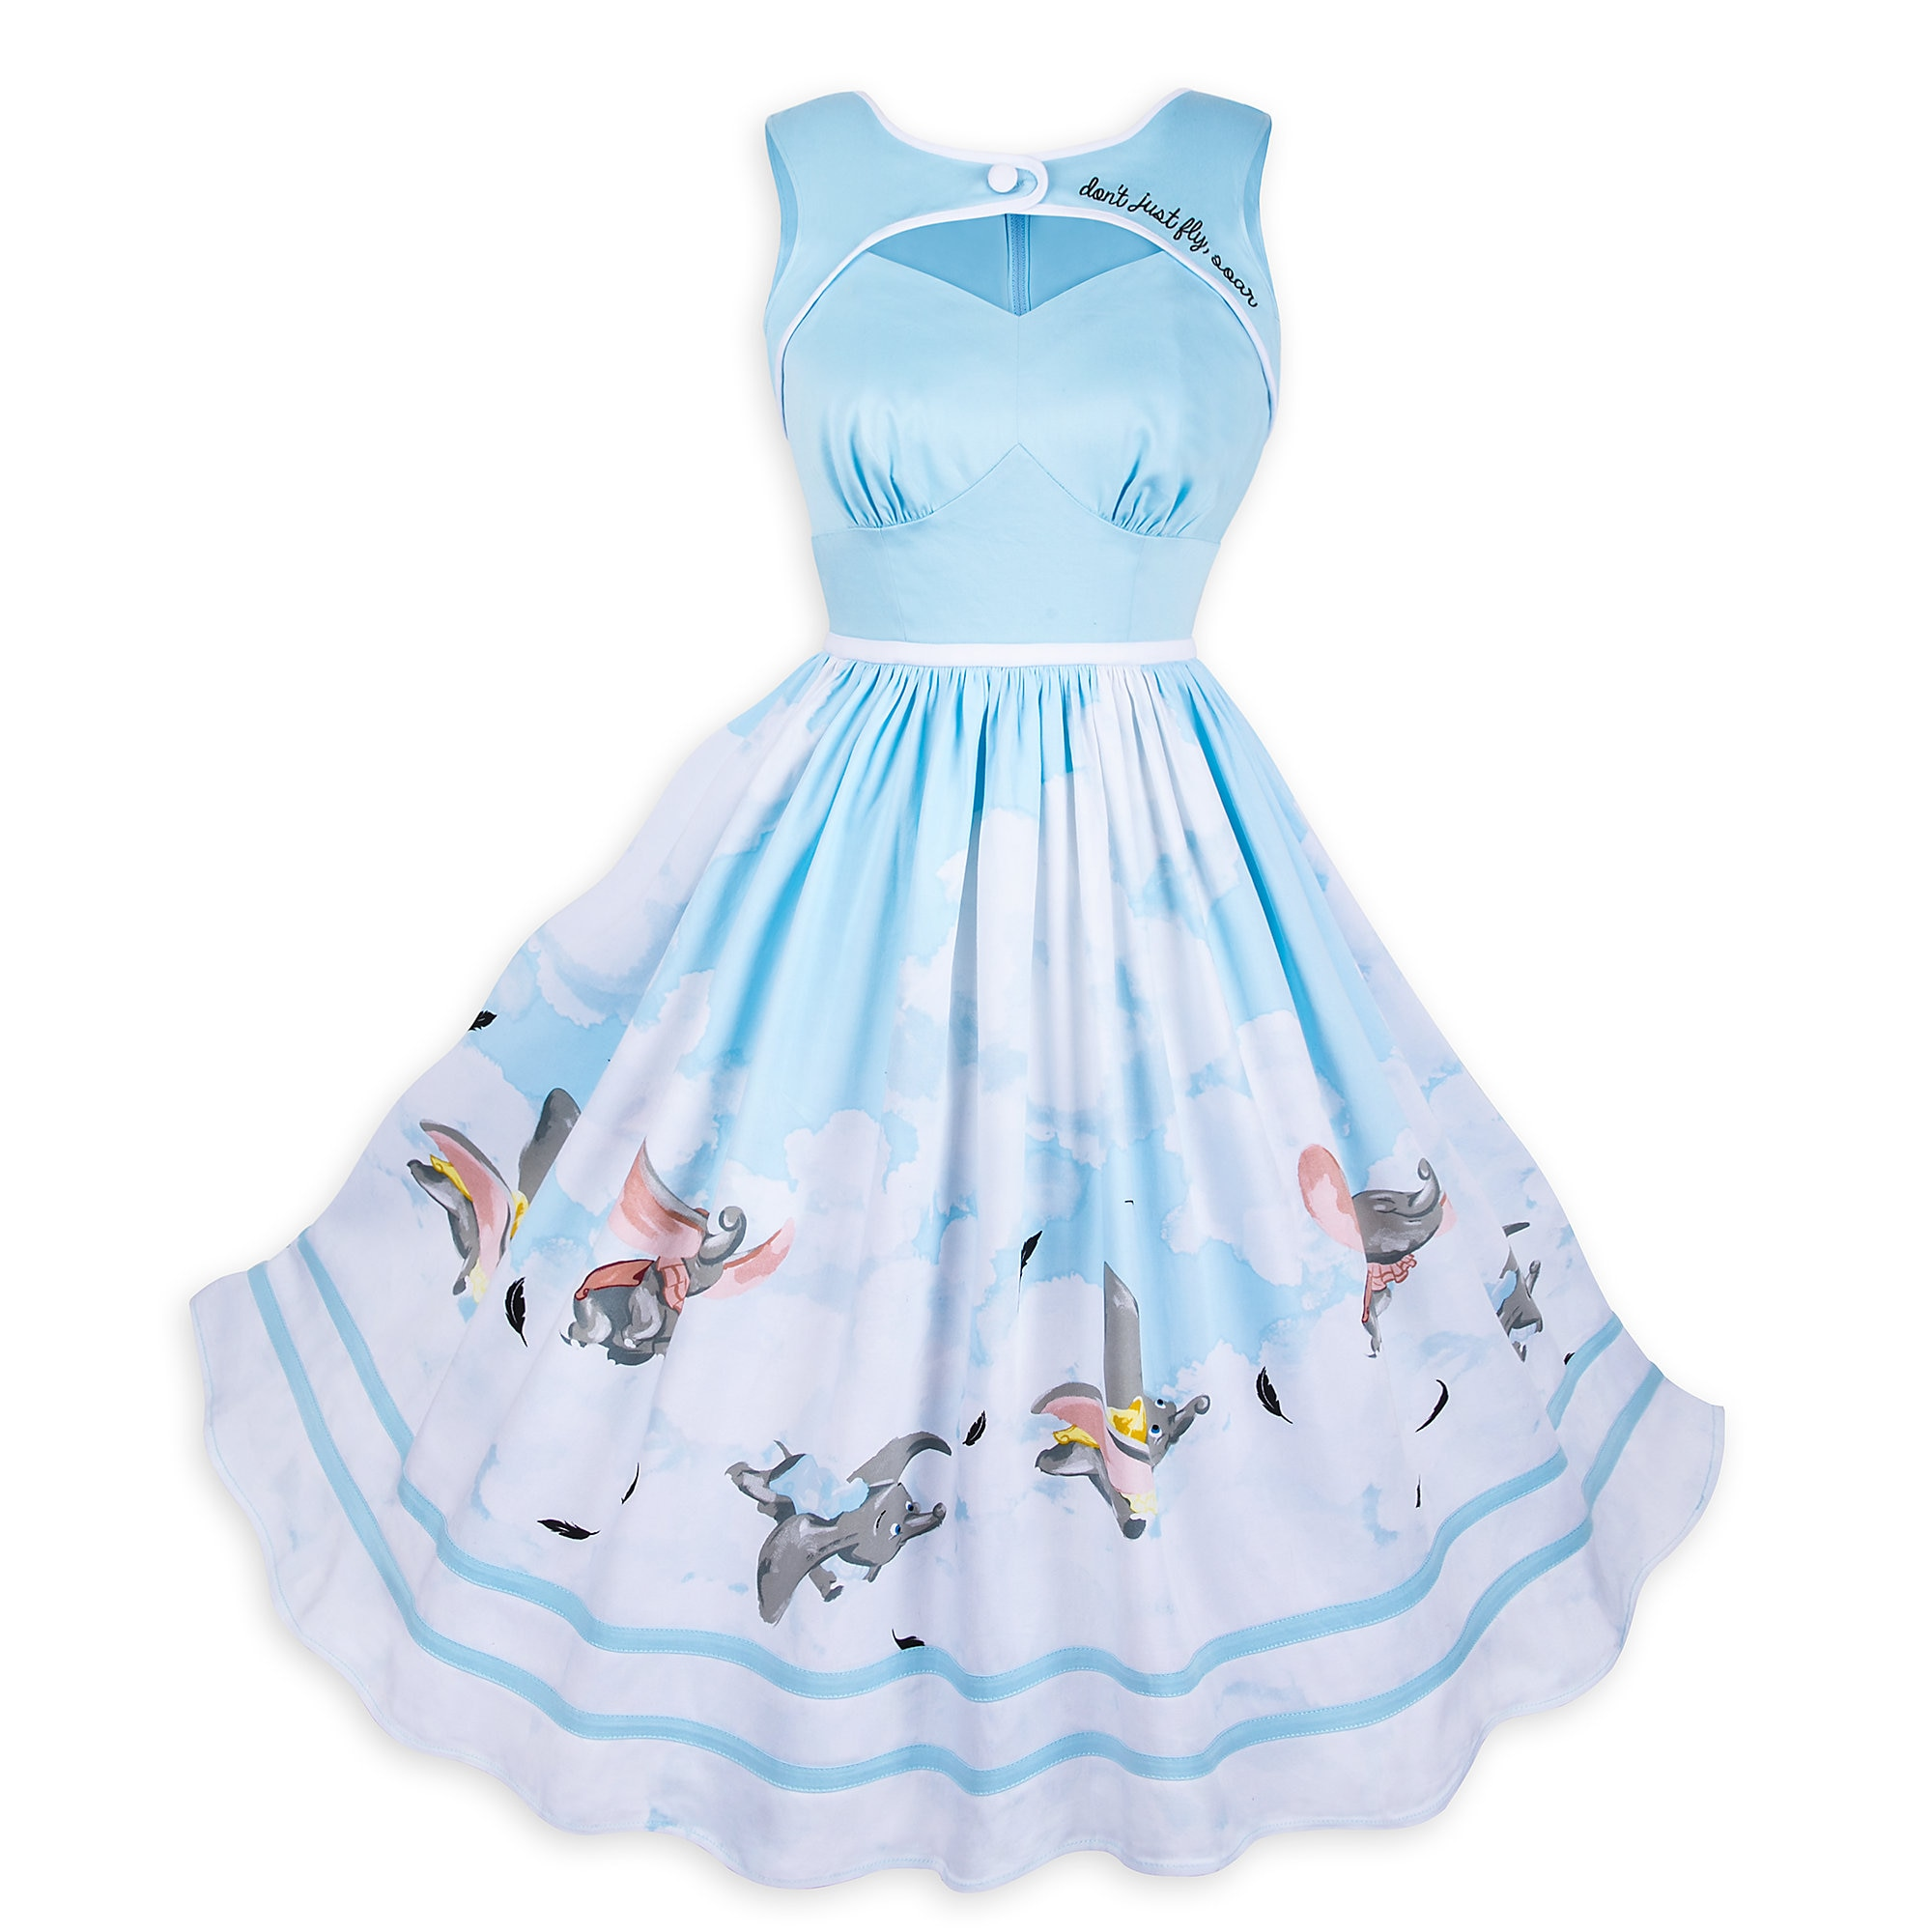 Dumbo Dress for Women by Her Universe | shopDisney